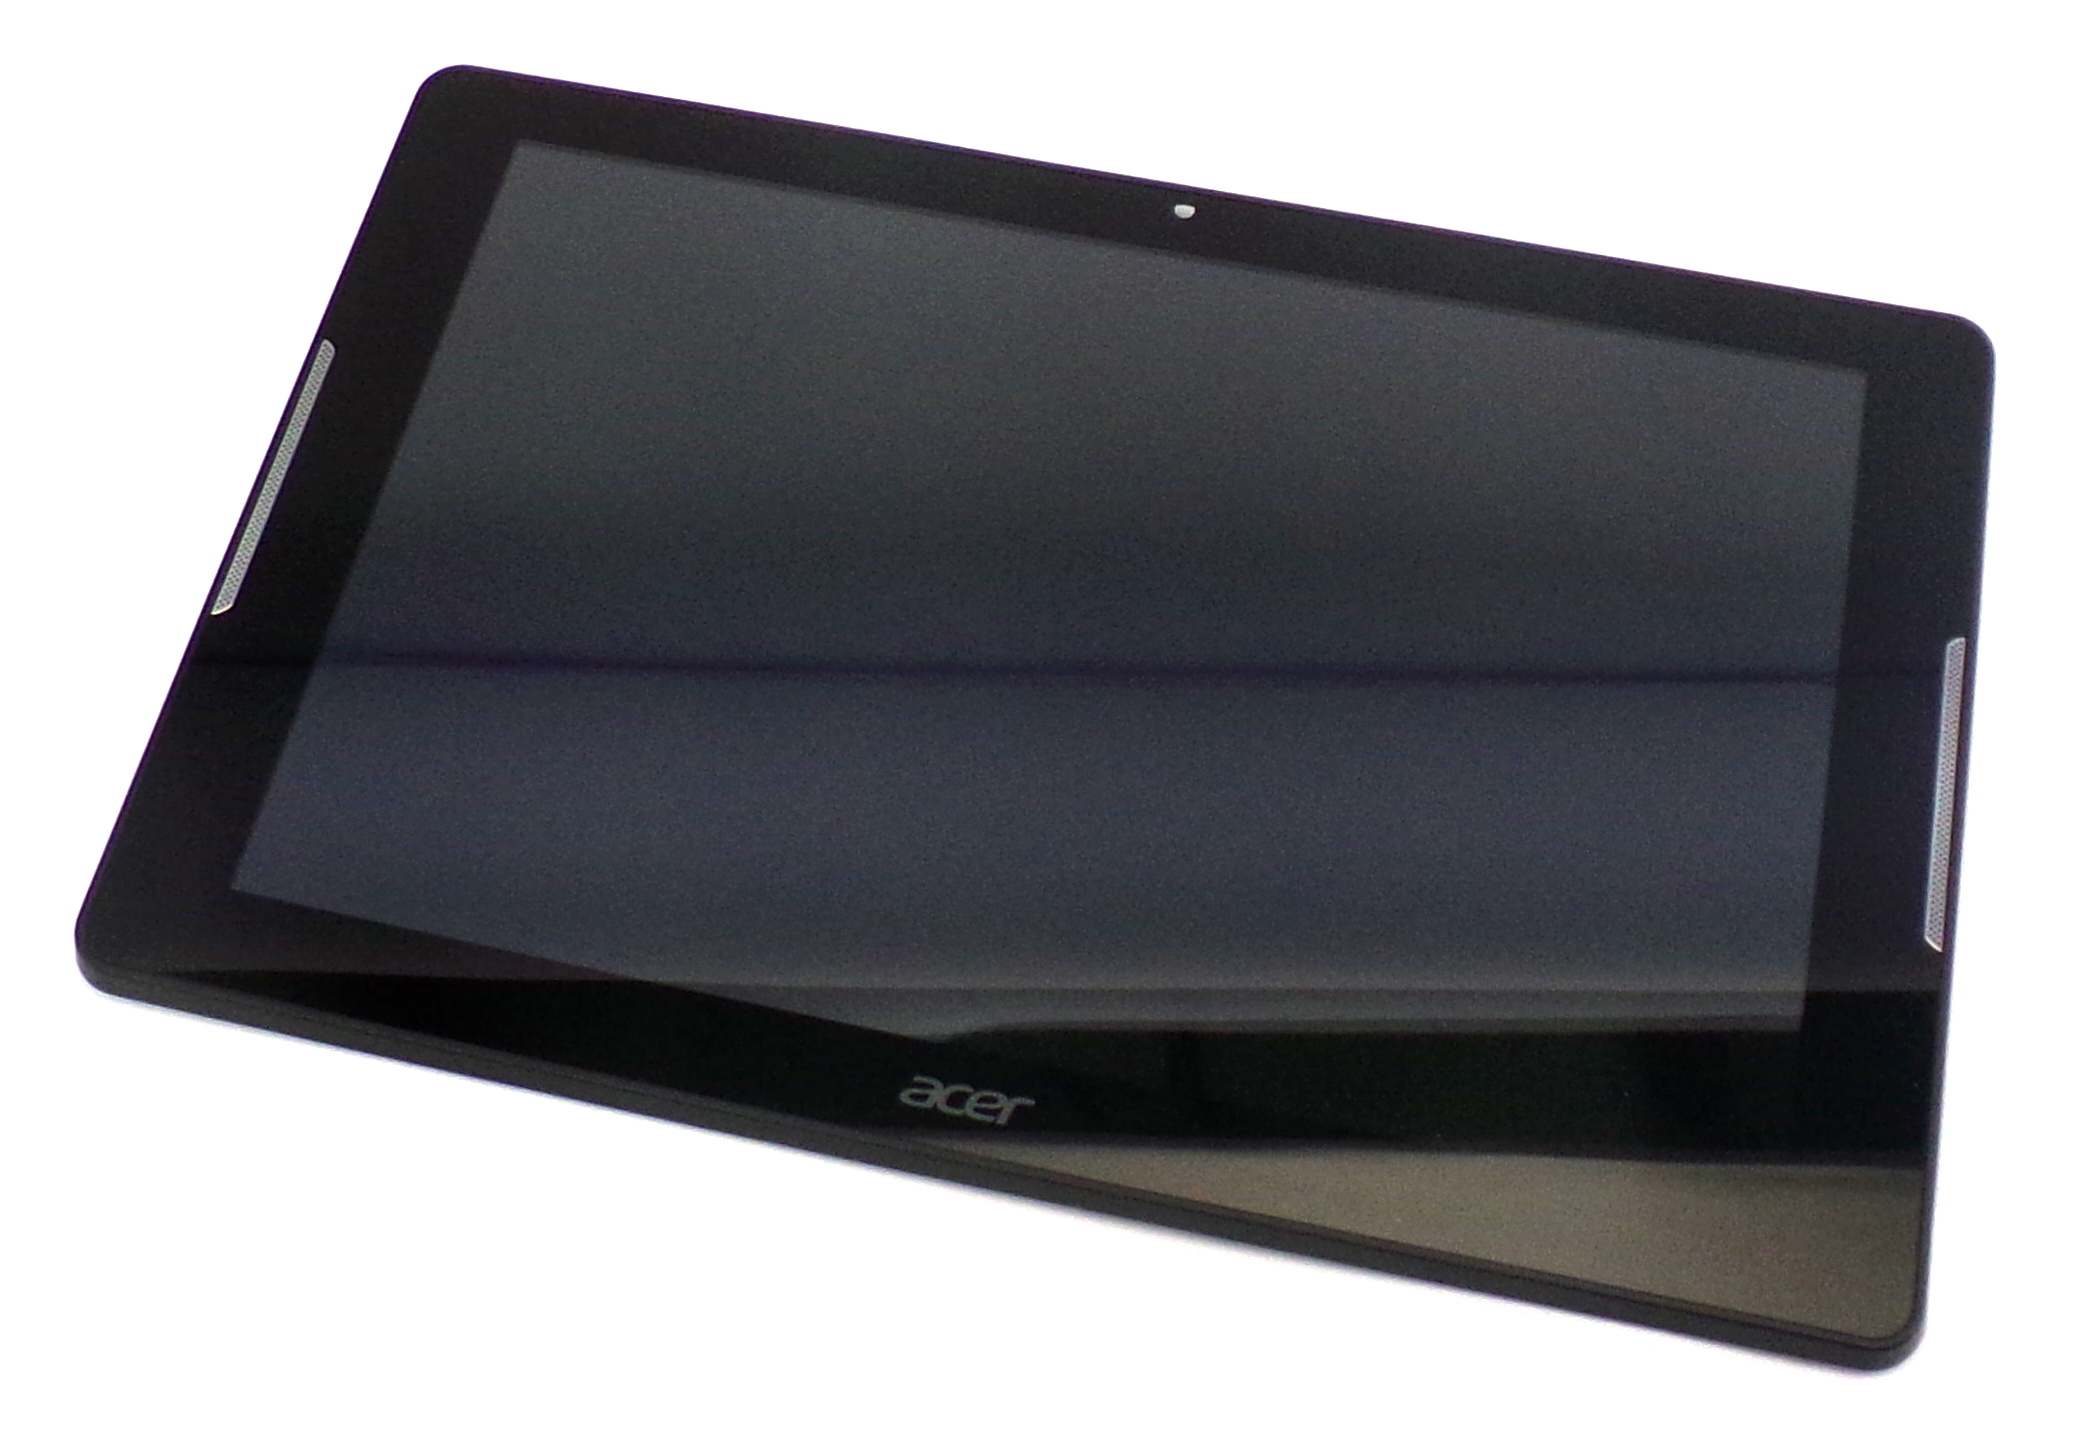 6M.LCNNB.001 Acer Iconia B3-A30 LCD Screen